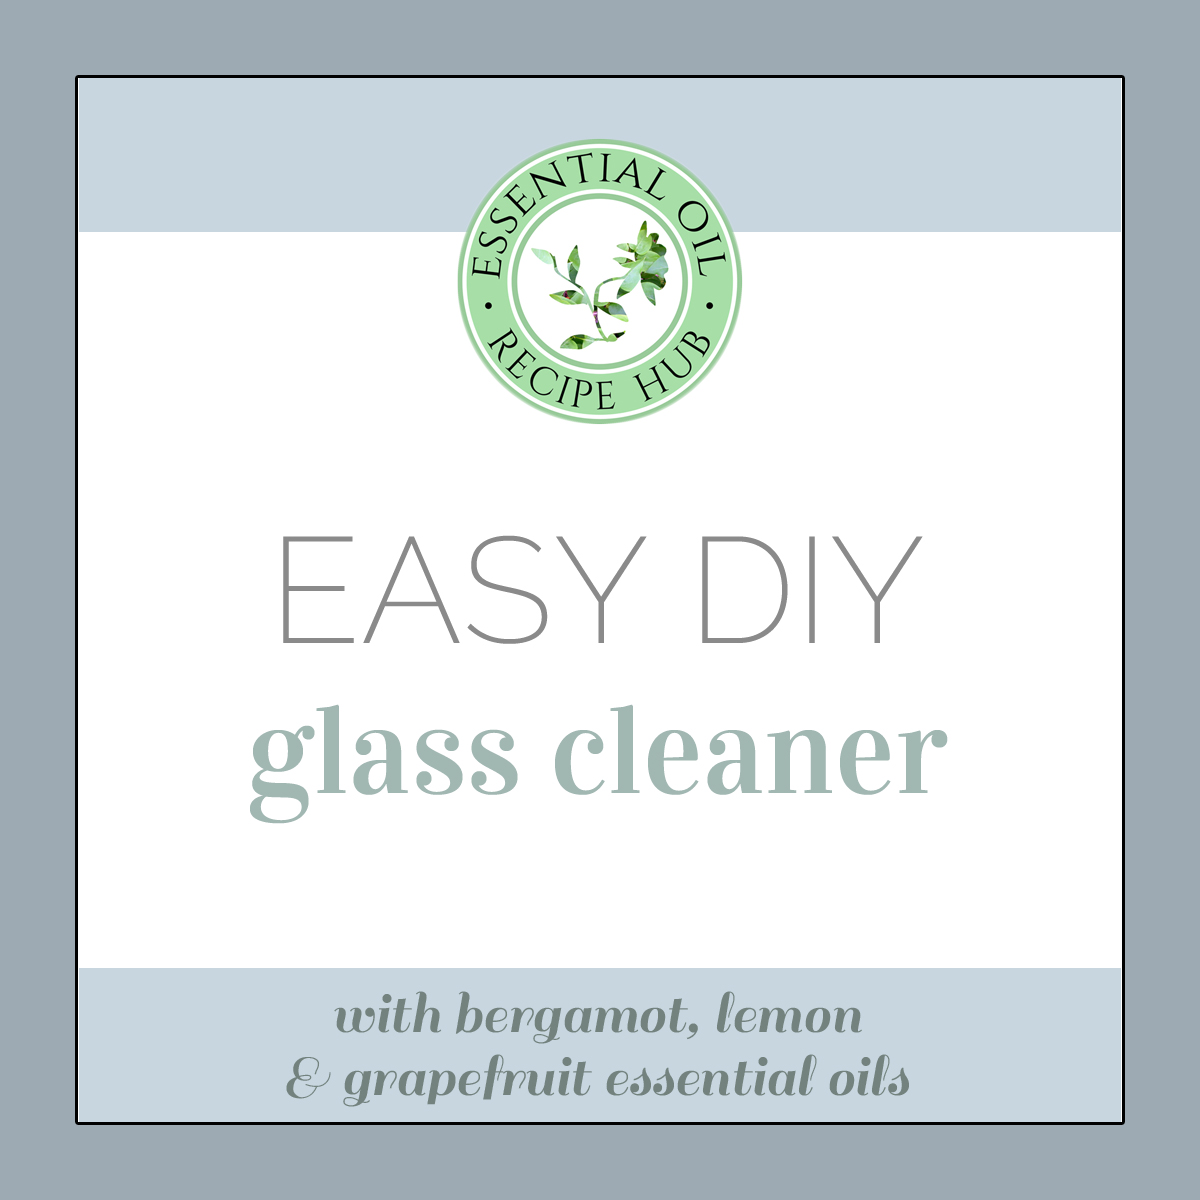 easy diy glass cleaner